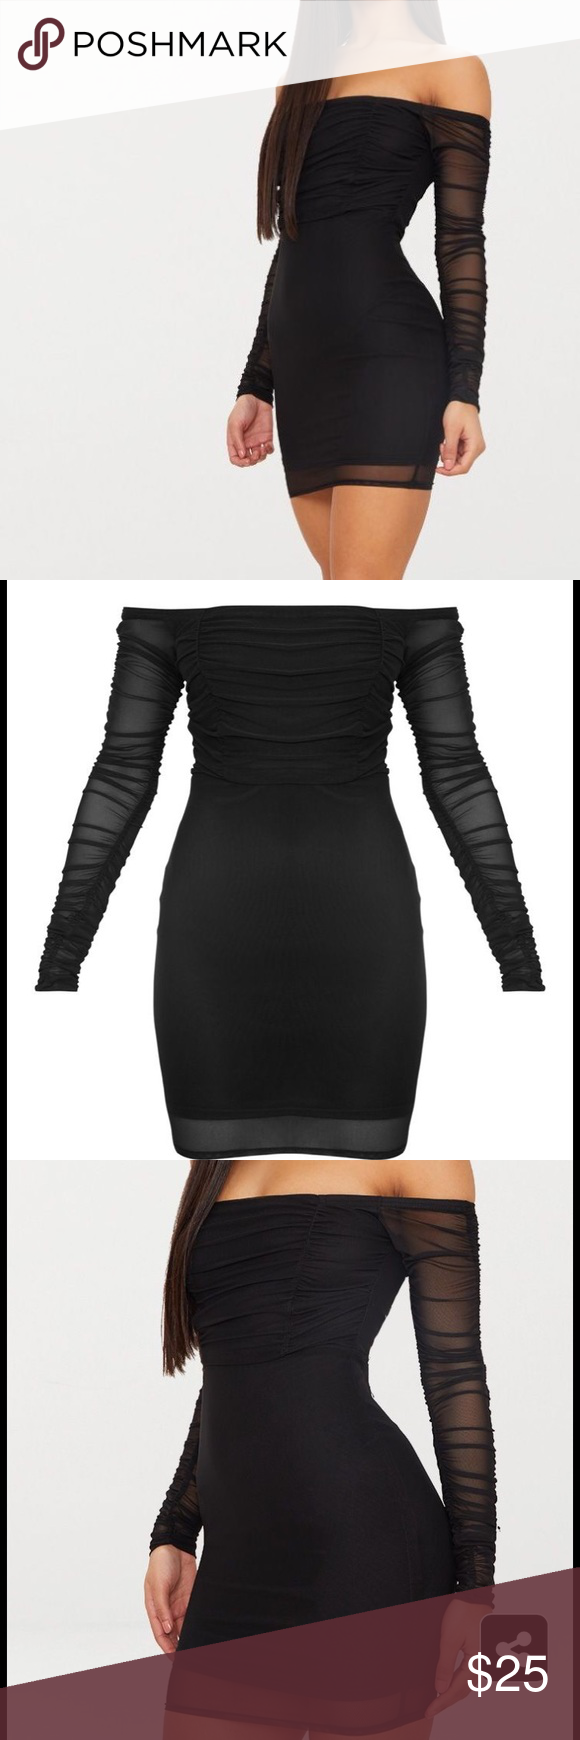 bbfa4cce71 Pretty little thing mesh Bardot bodycon dress Black ruched mesh Bardot  bodycon dress. Very flattering on curves. Worn once. Dress is still on site  for full ...